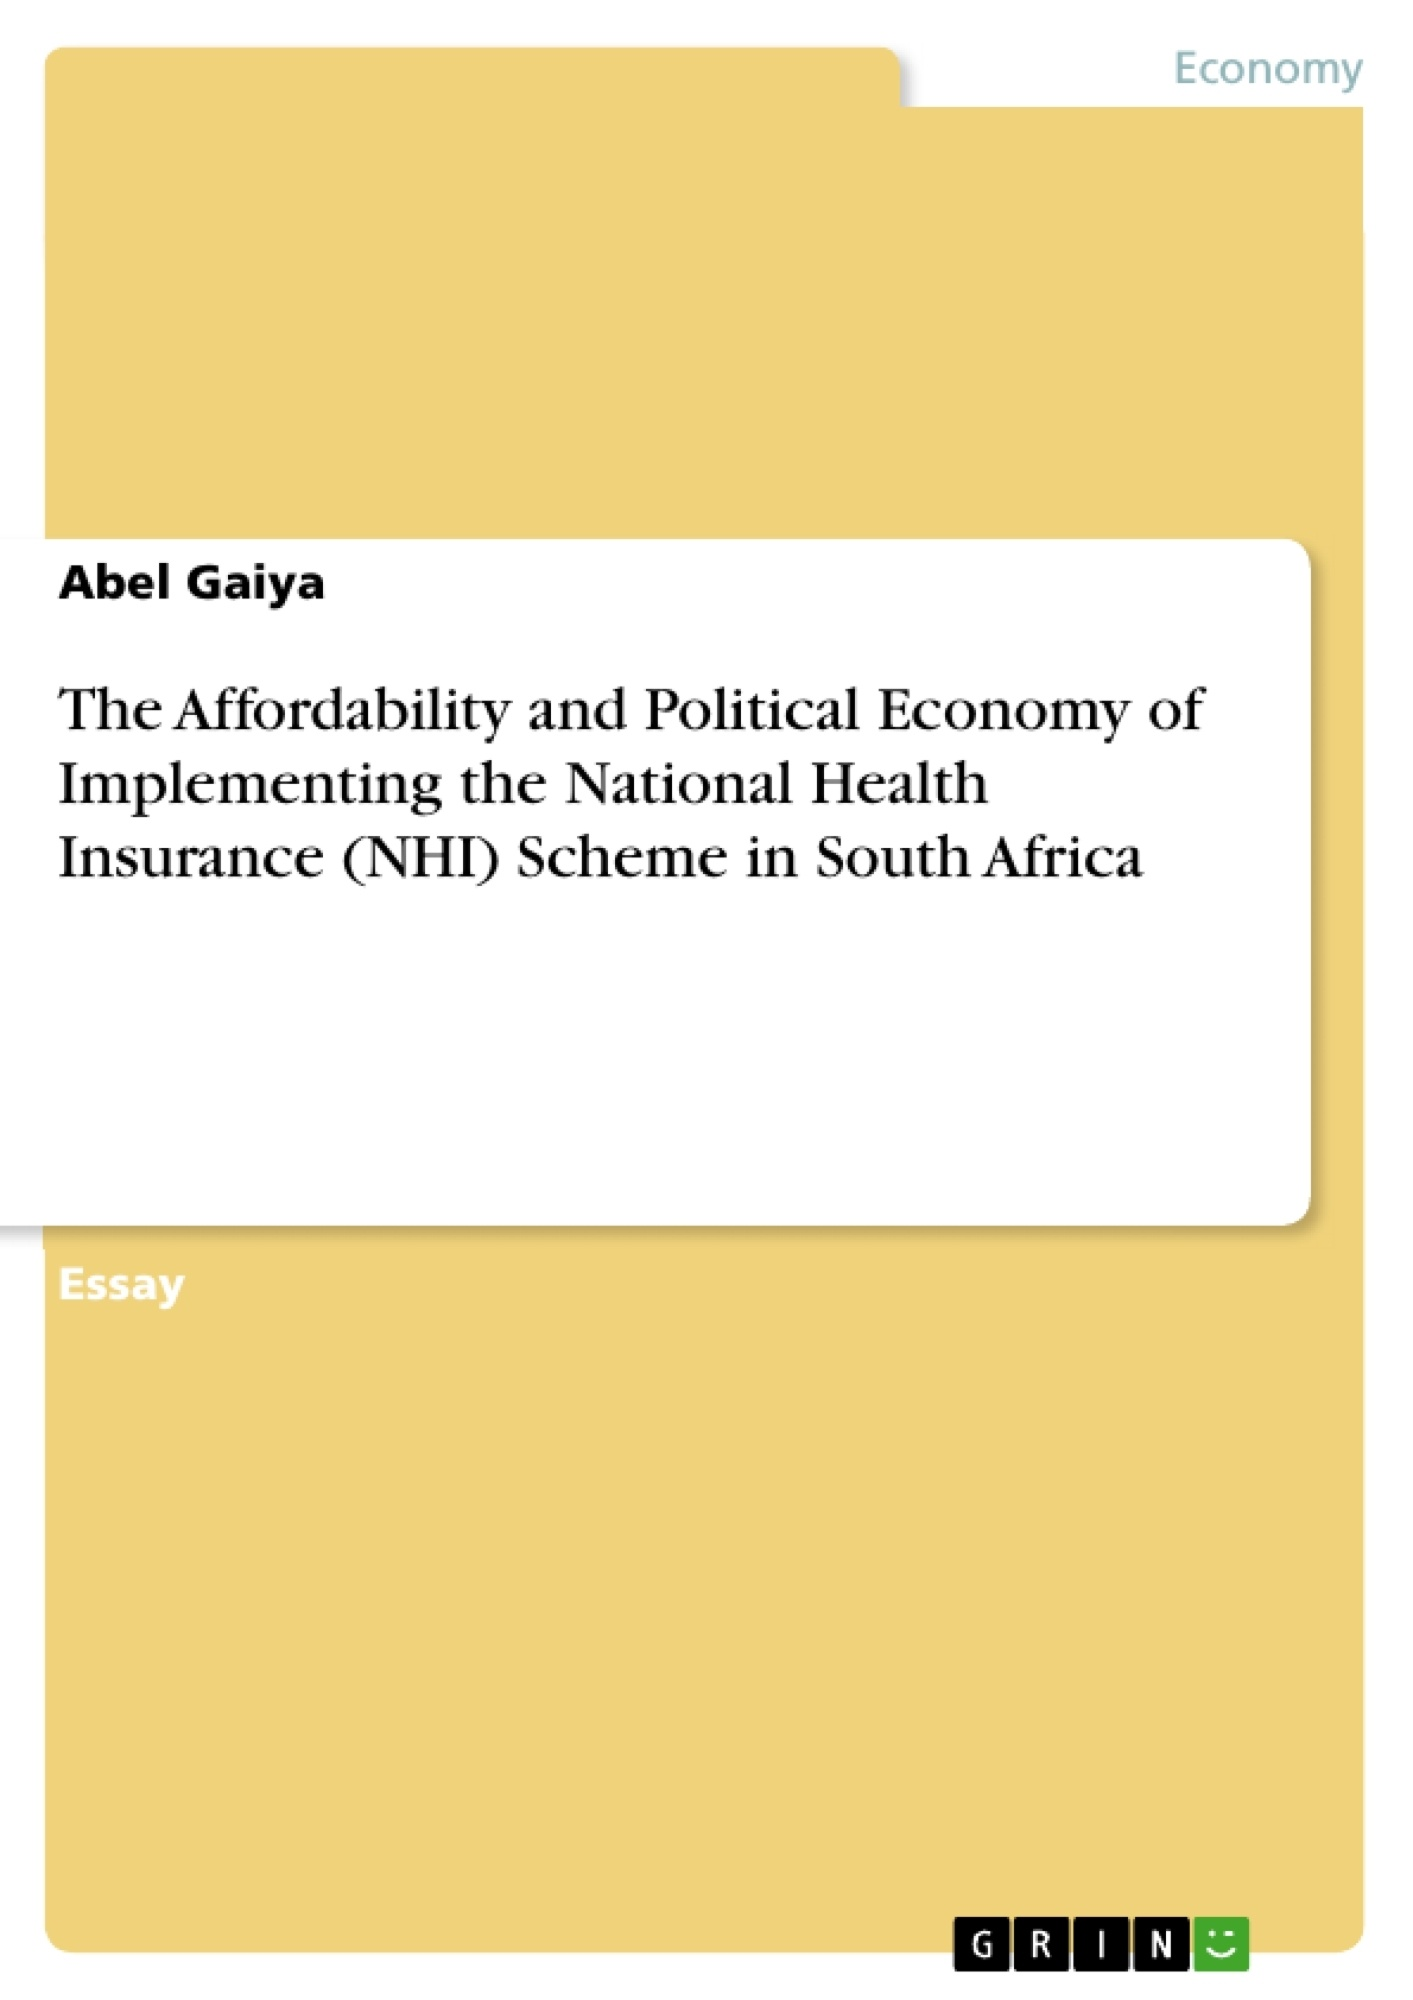 Title: The Affordability and Political Economy of Implementing the National Health Insurance (NHI) Scheme in South Africa